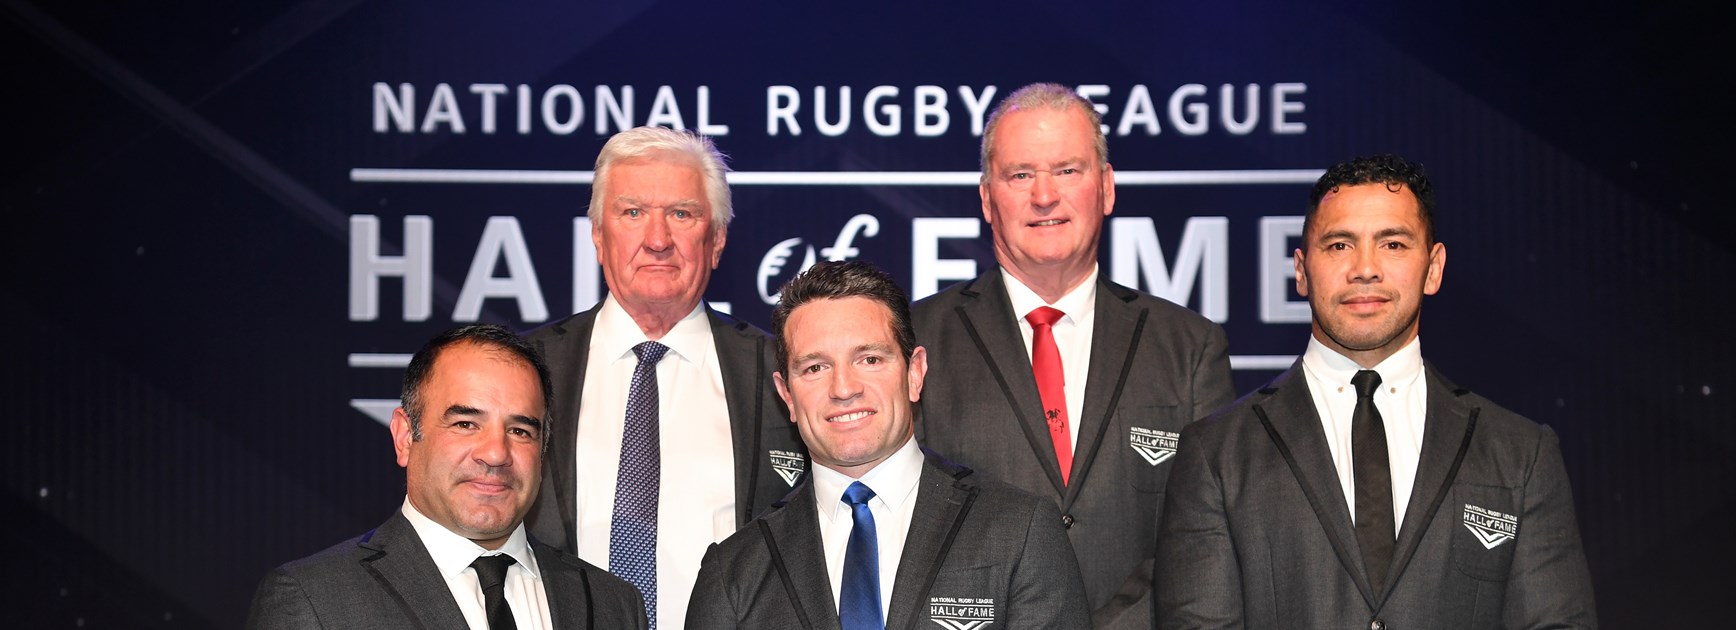 Hall of Fame highlights everything good about rugby league